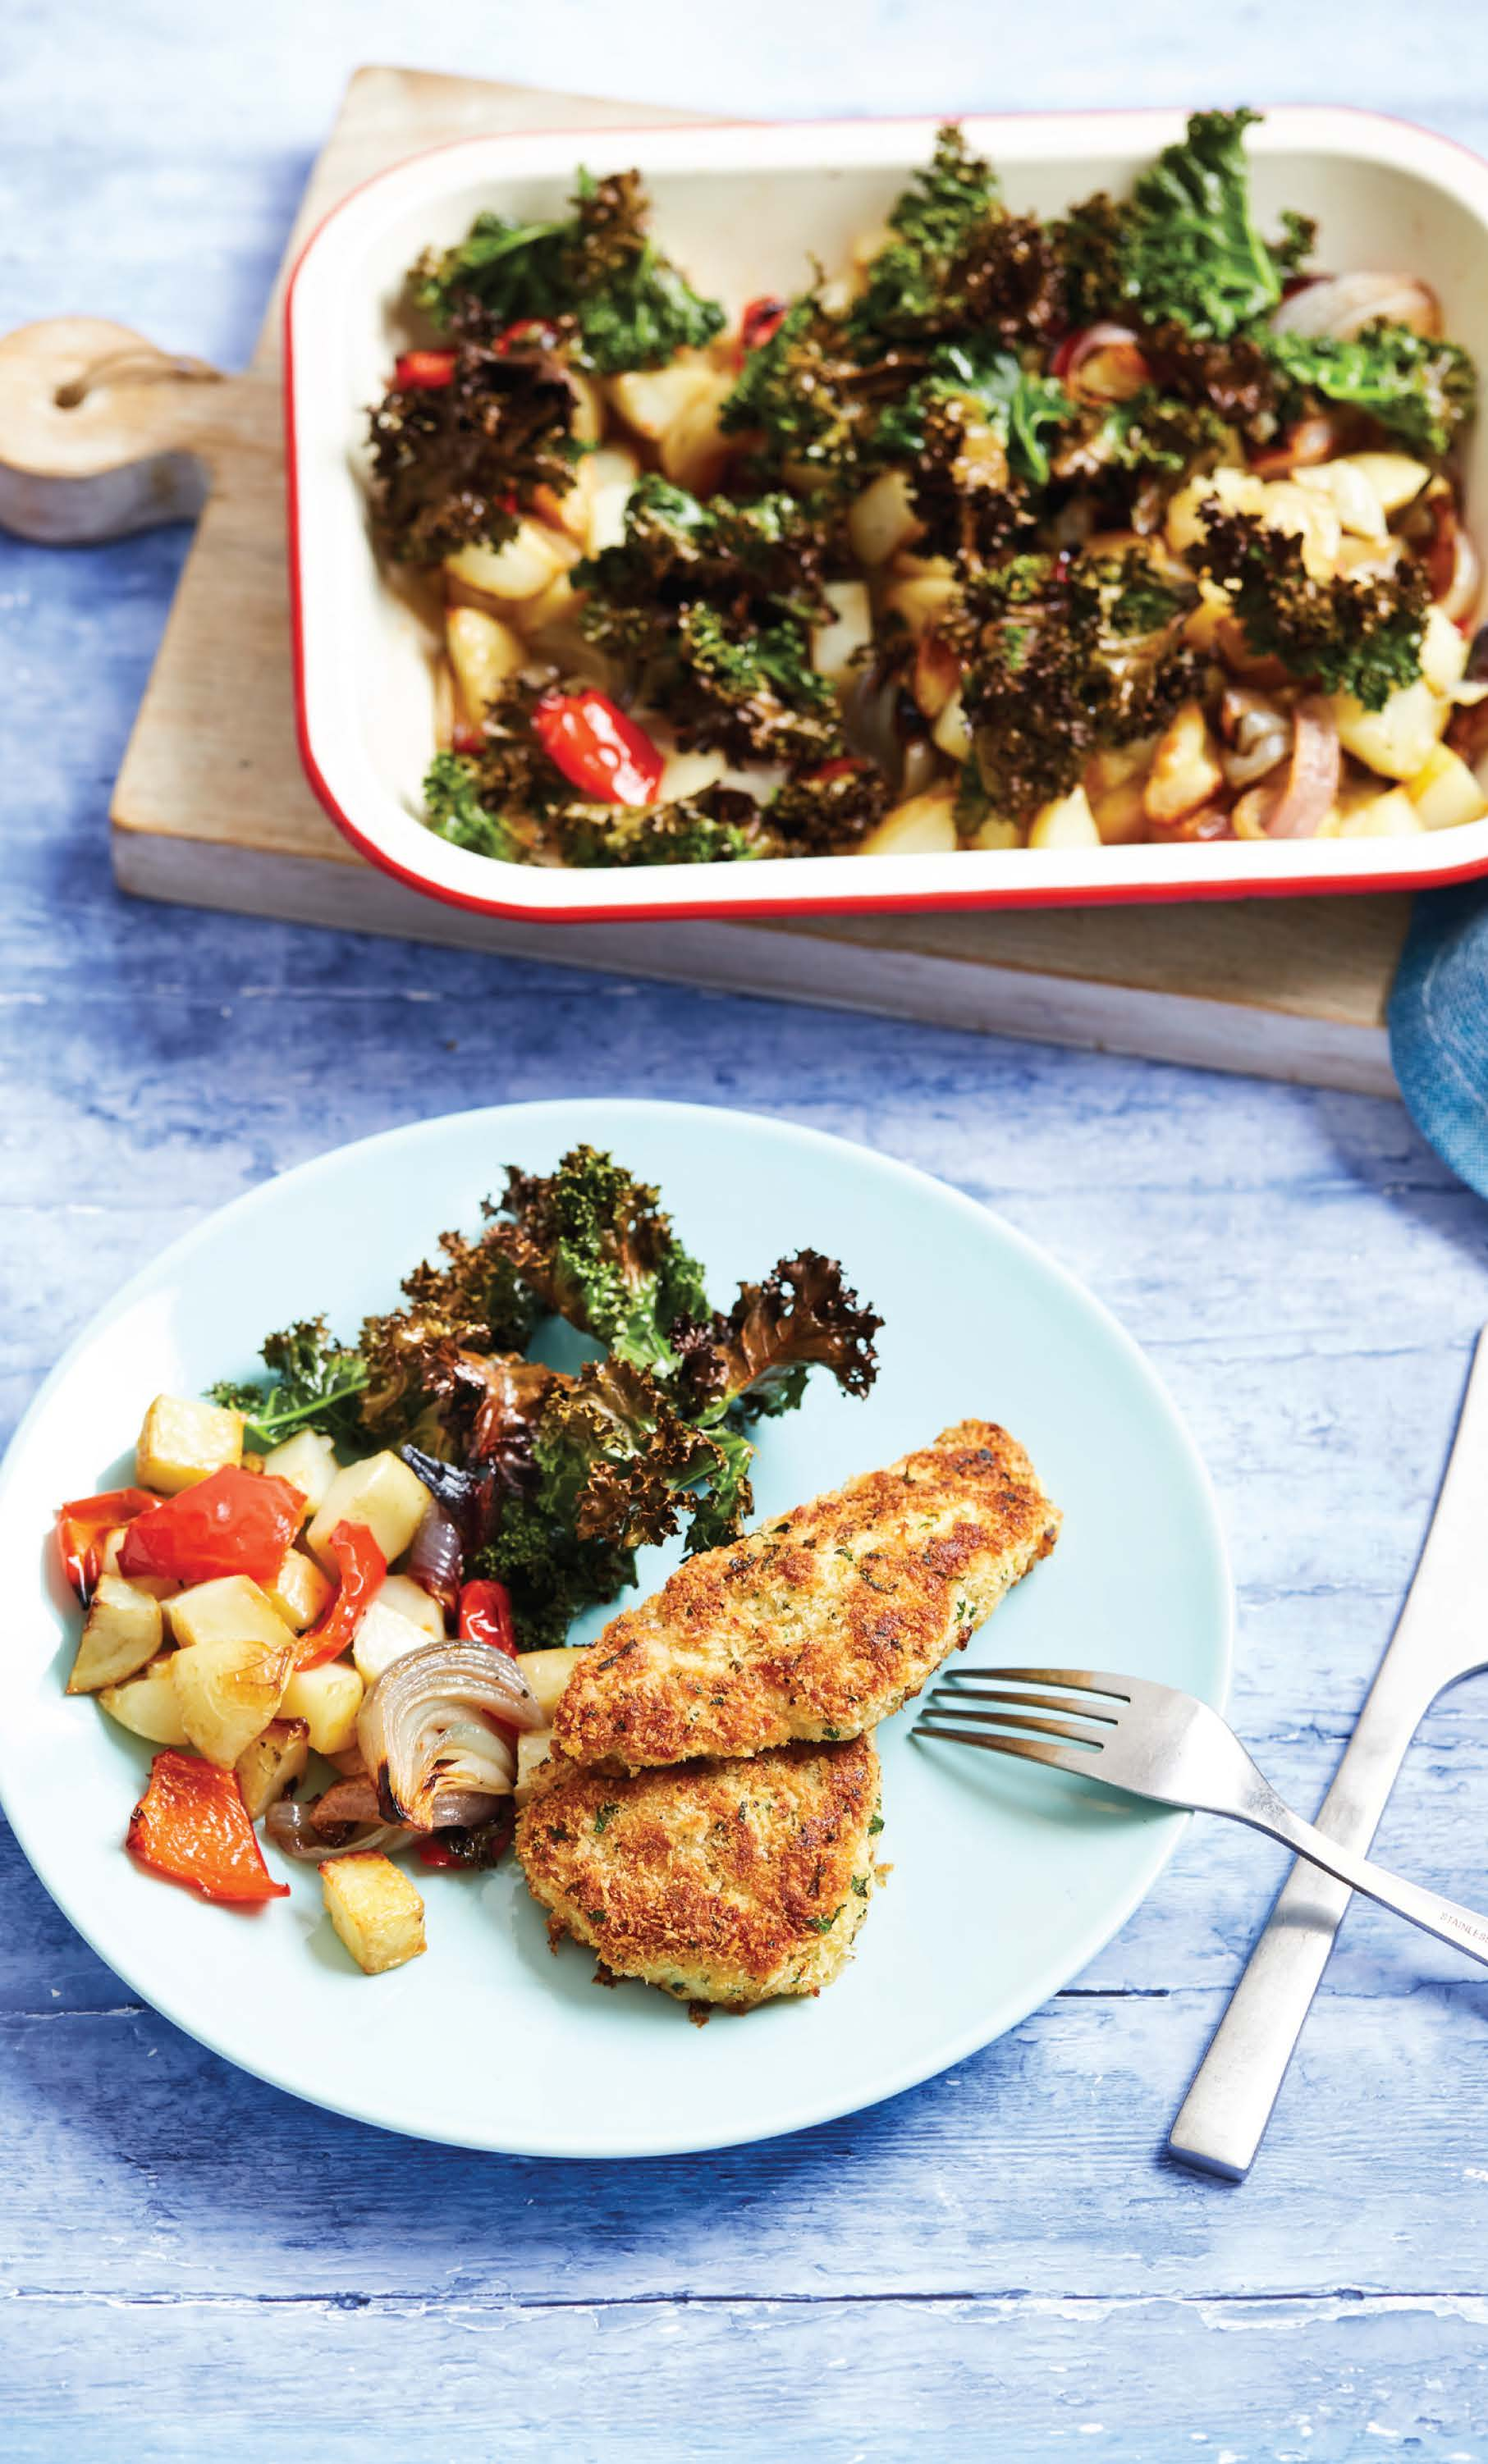 Crumbed chicken with roasted vegetables and crispy kale